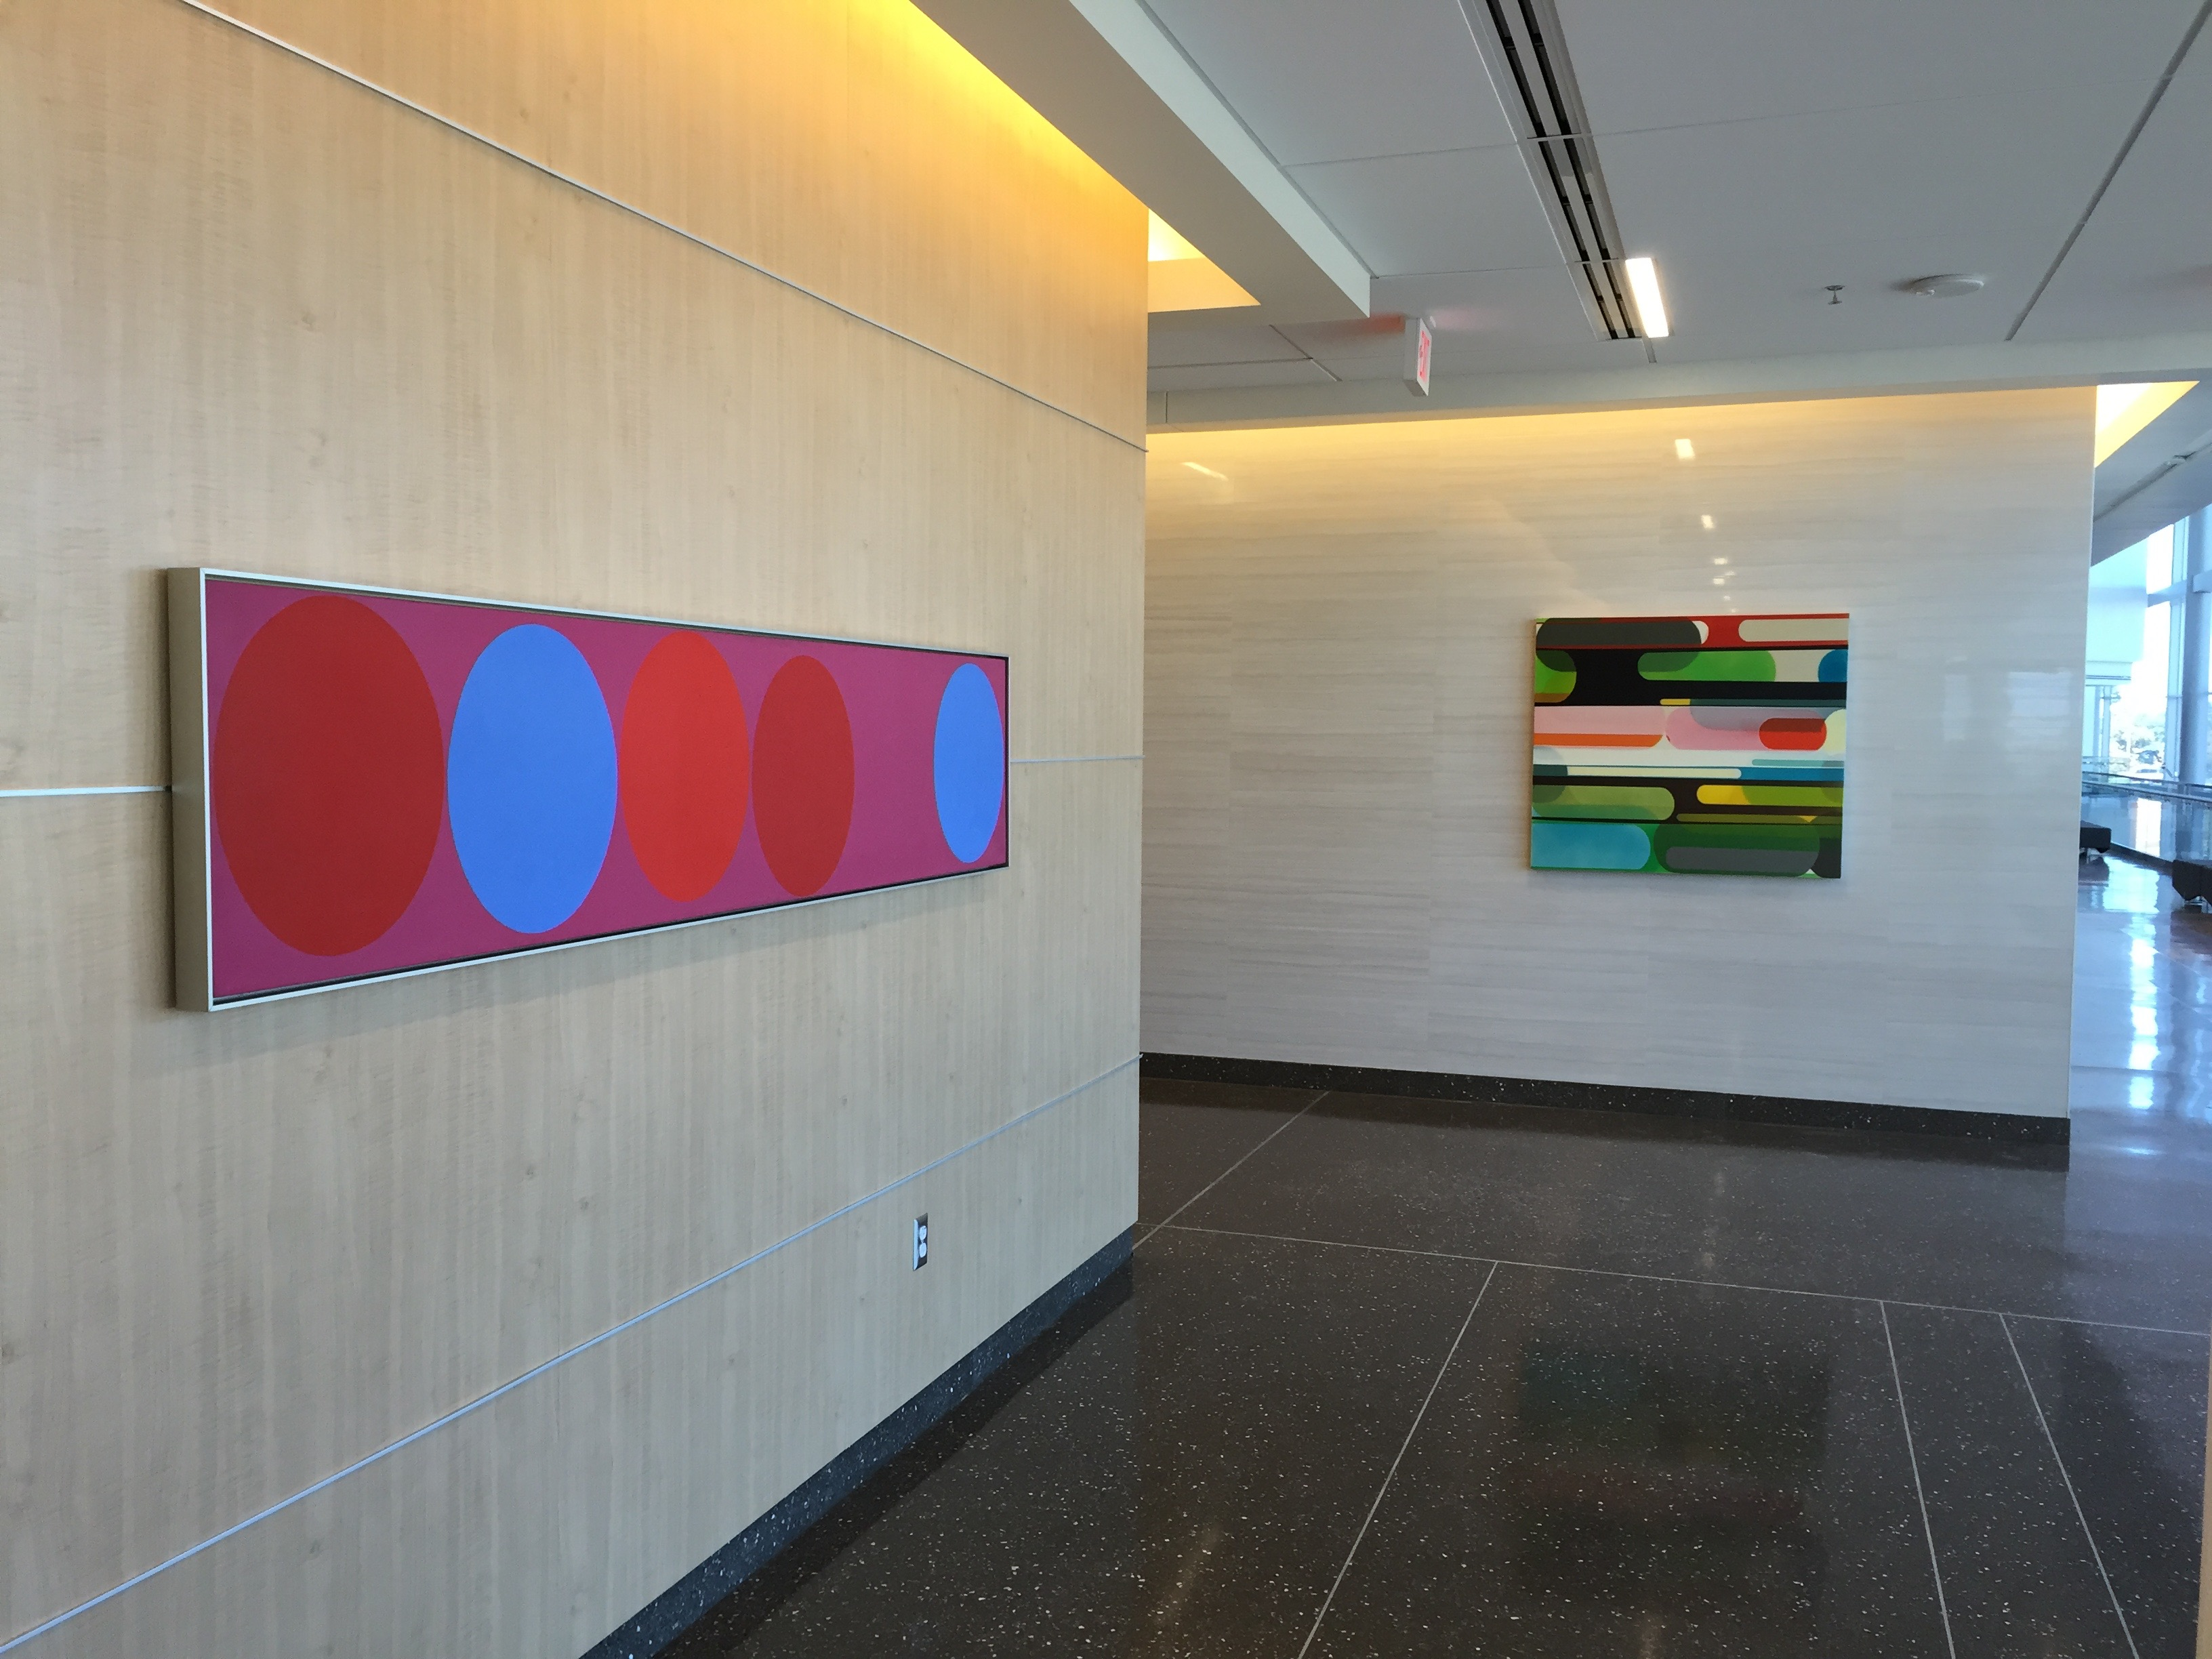 Art advisory by Carneal Simmons.  Works by Oli Sihvonen and Susan Dory at UT Southwestern Clements University Hospital